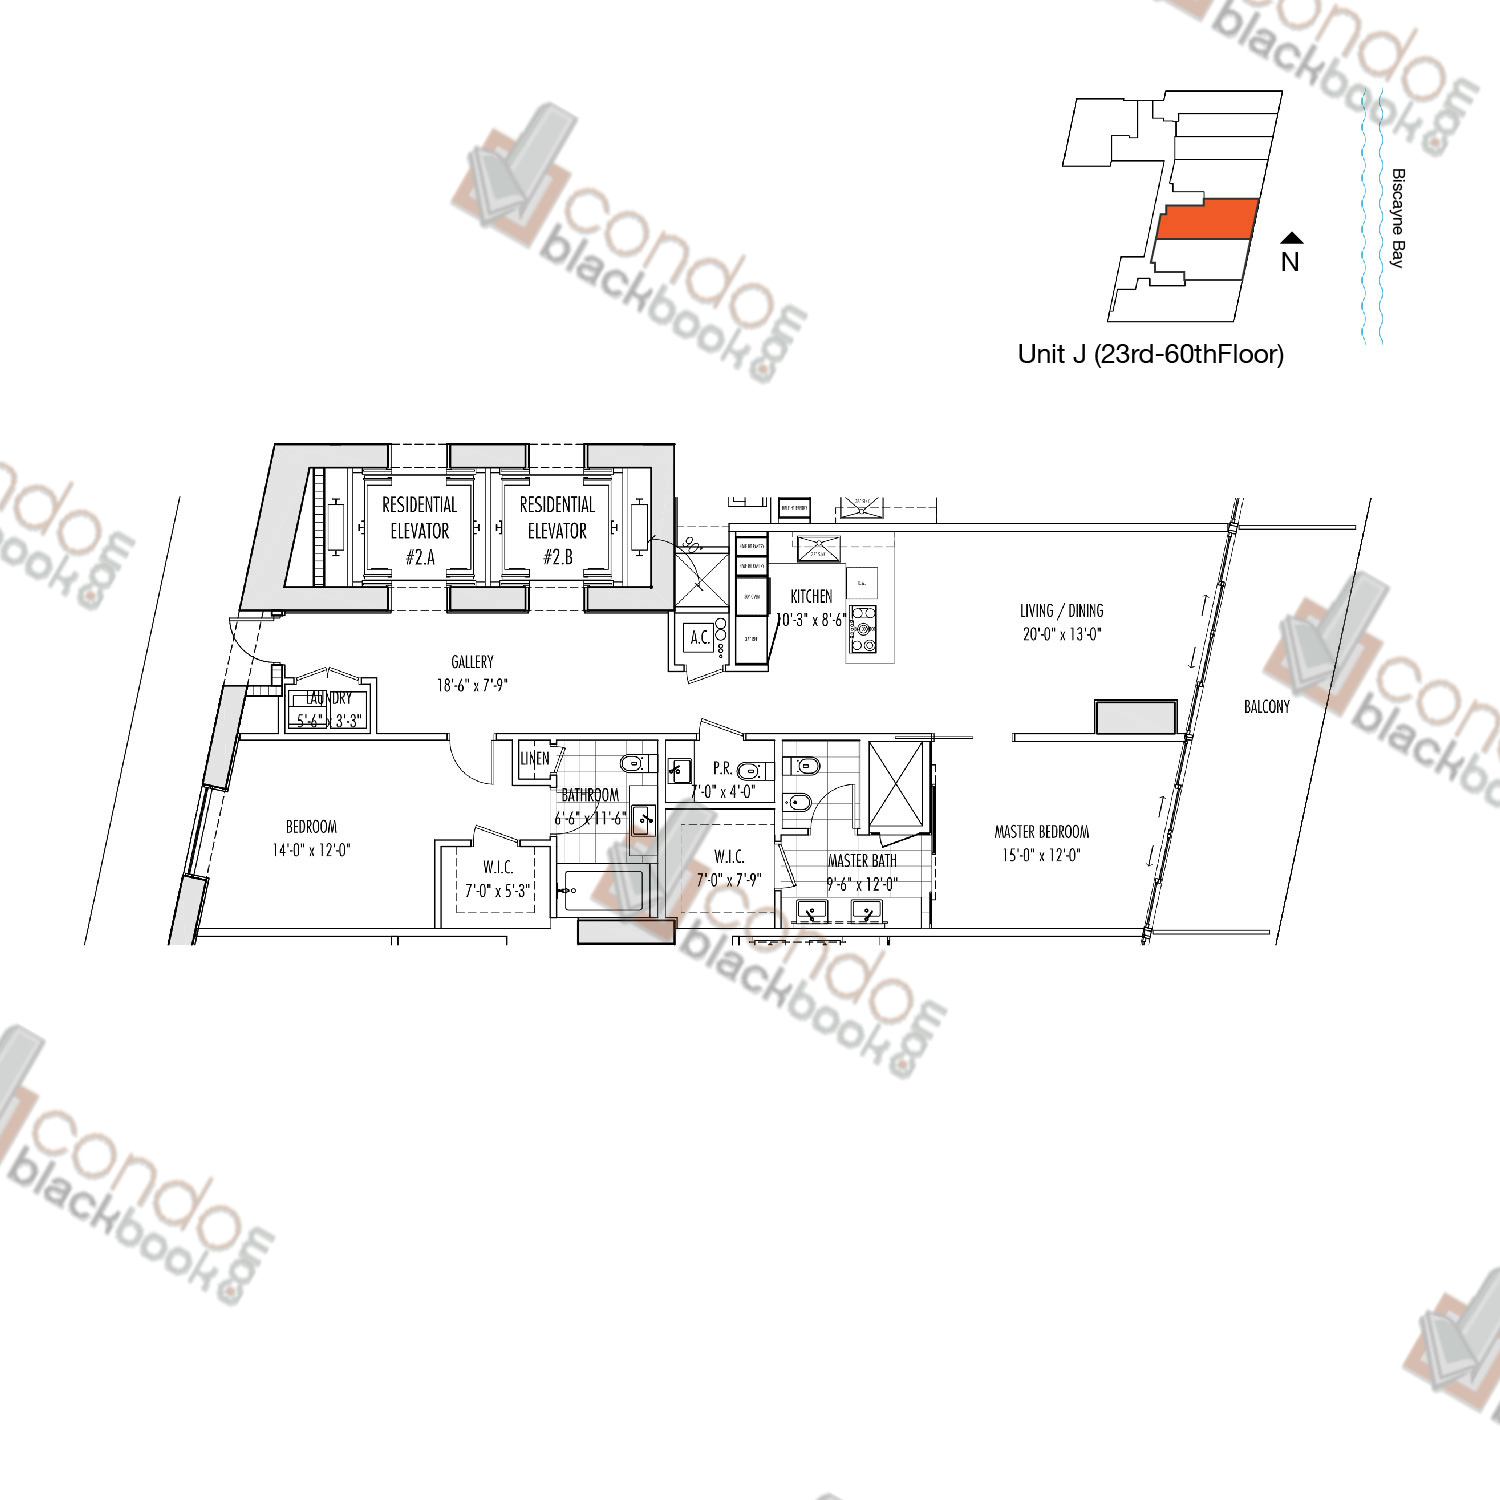 Floor plan for Marquis Downtown Miami Miami, model J, line 03, 2/2.5 bedrooms, 1,498 sq ft